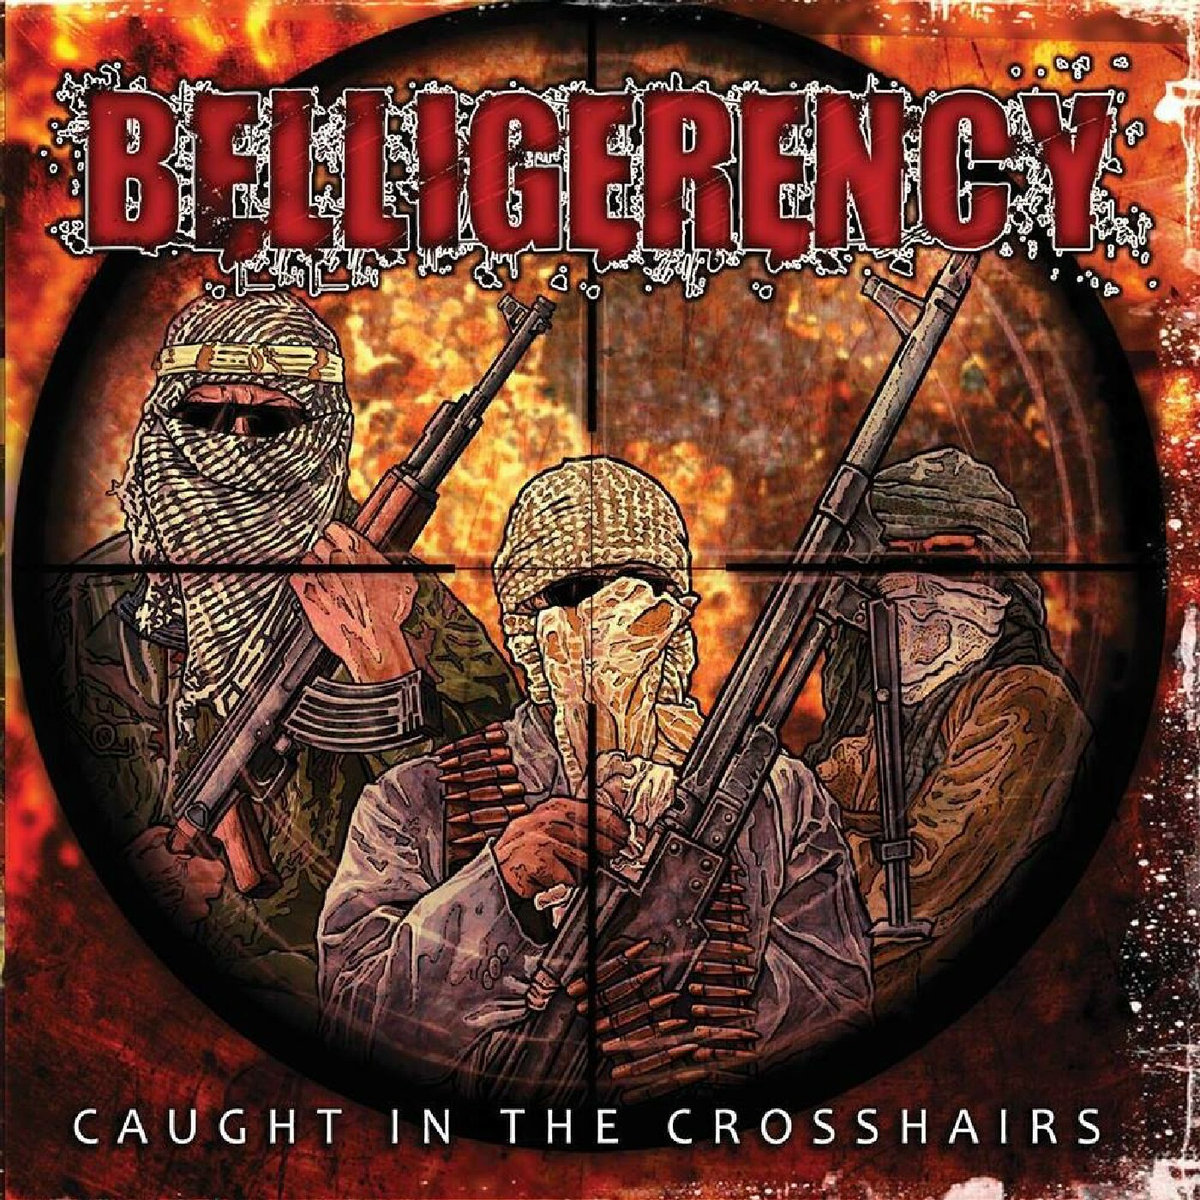 from Caught In The Crosshairs by Belligerency